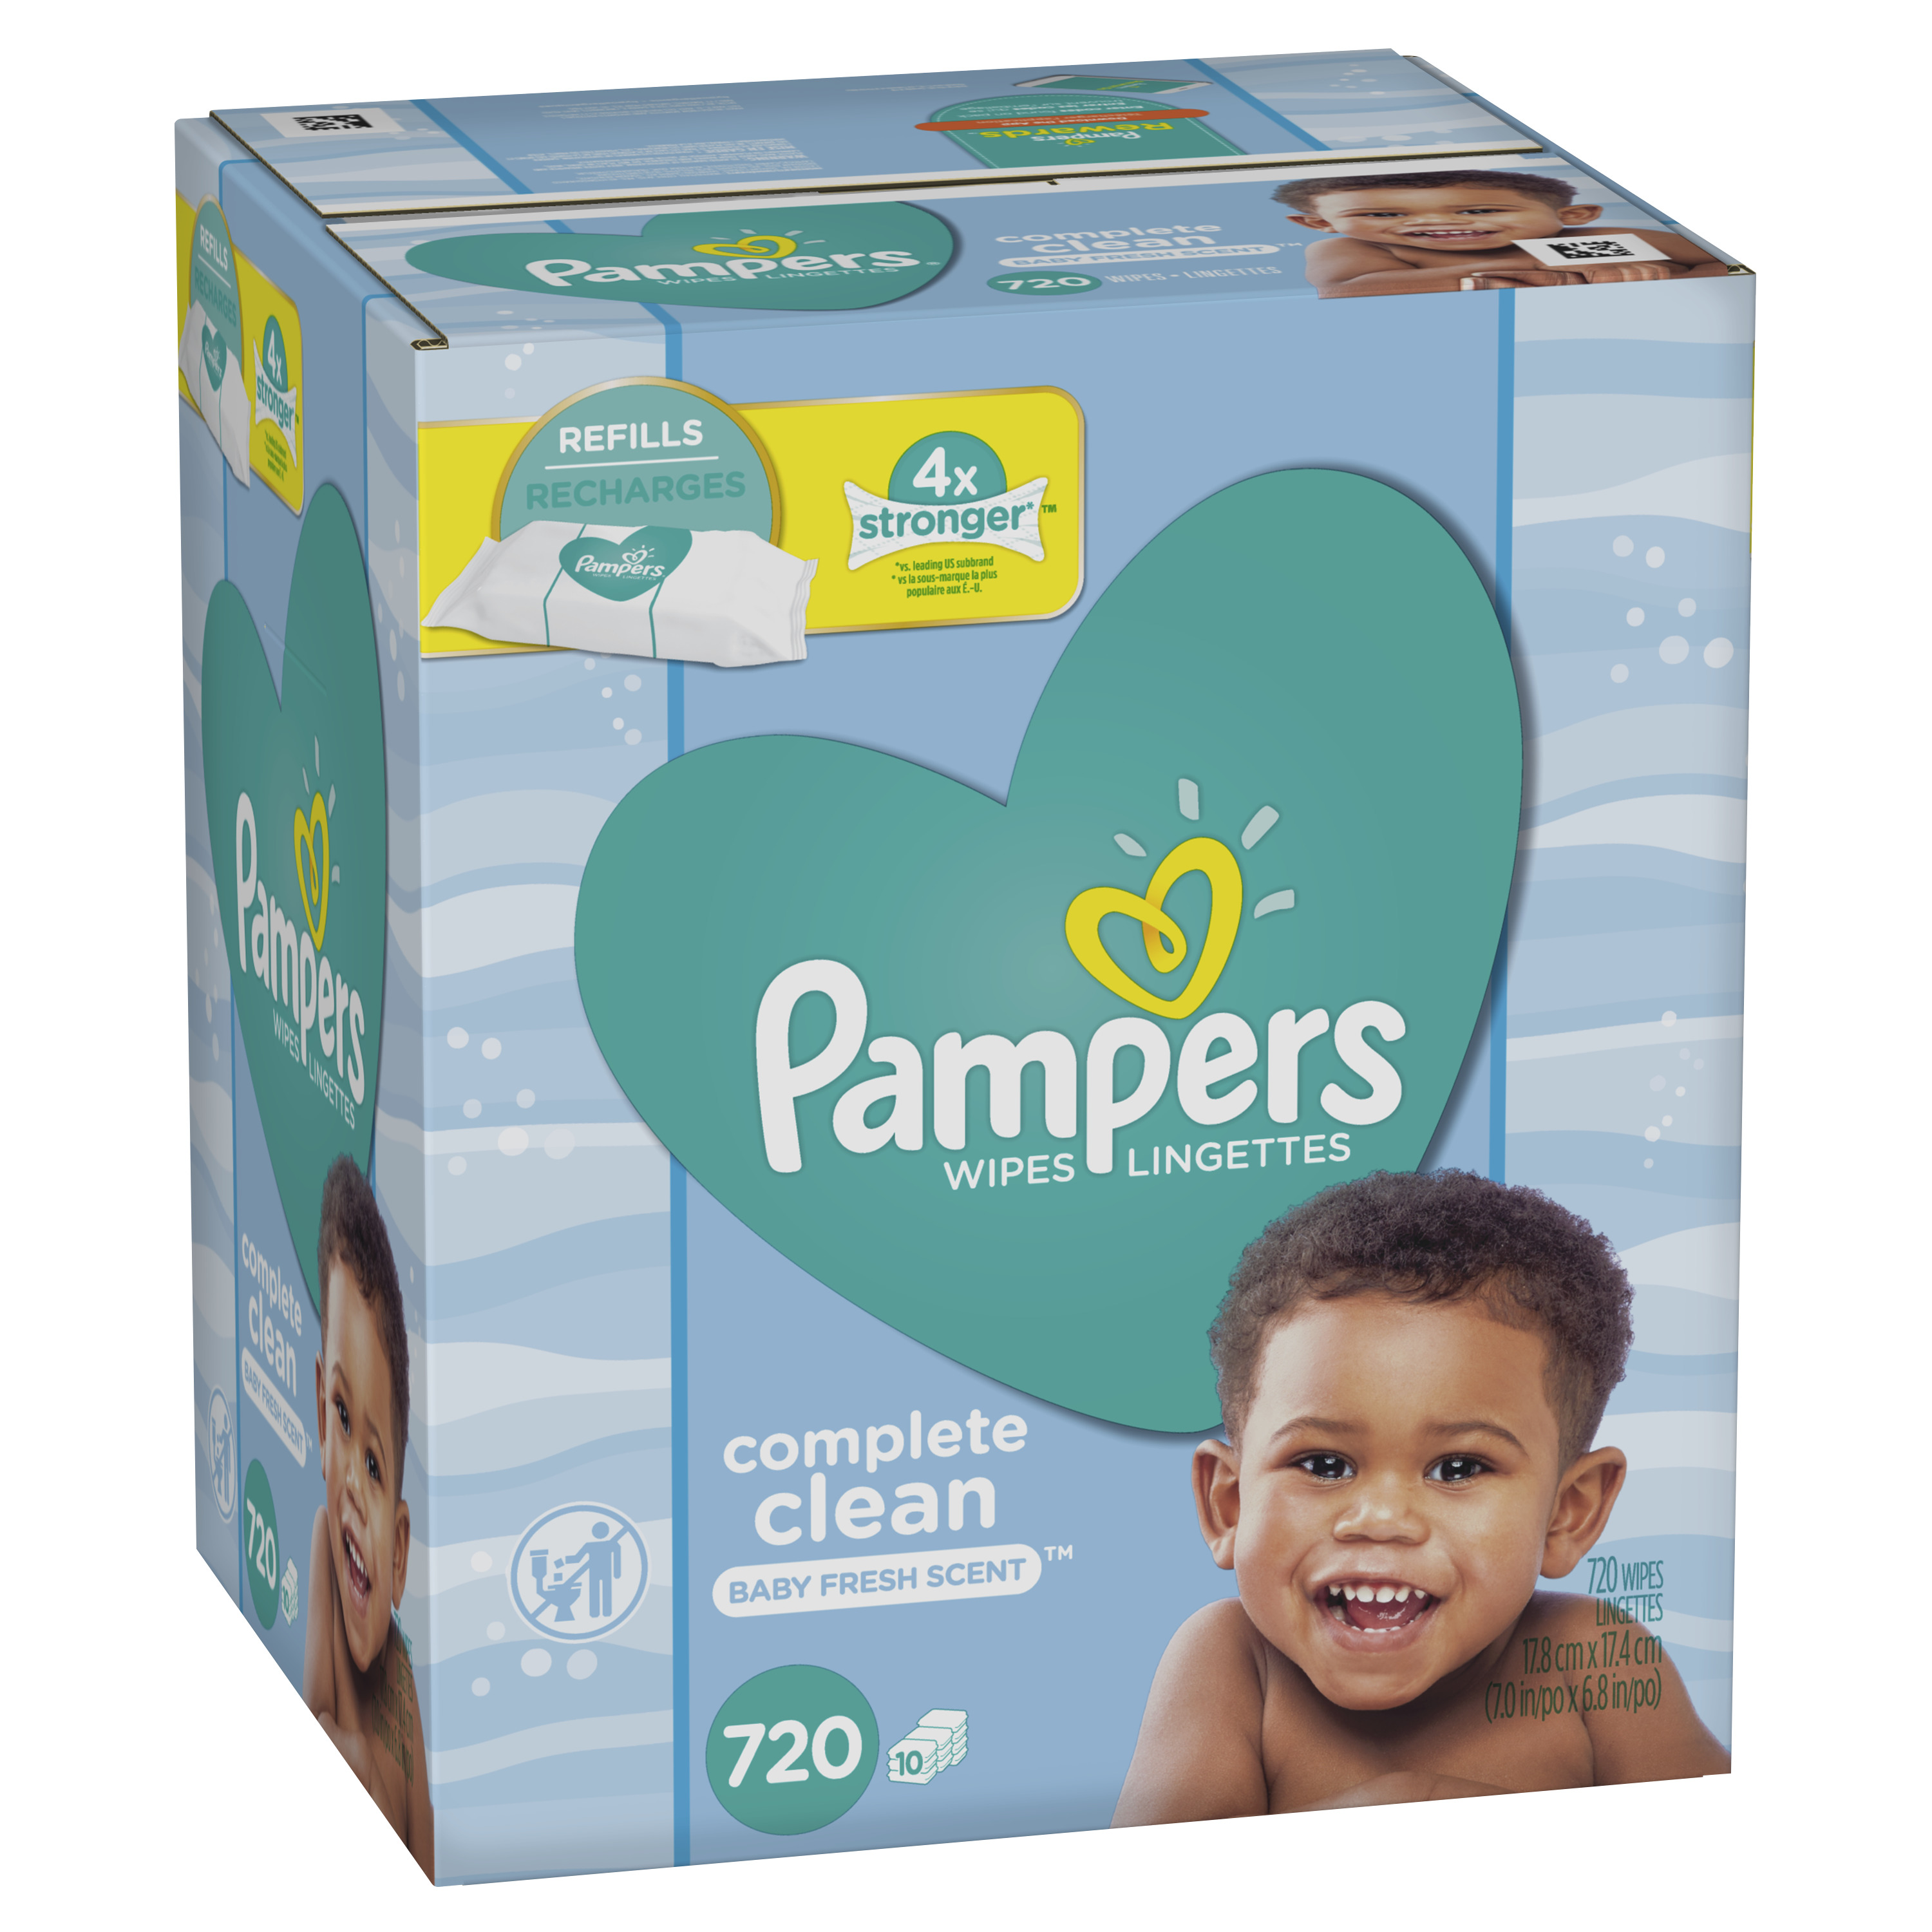 Pampers Baby Wipes, Complete Clean Scented, 10X Refill (Tub Not Included), 720 Count